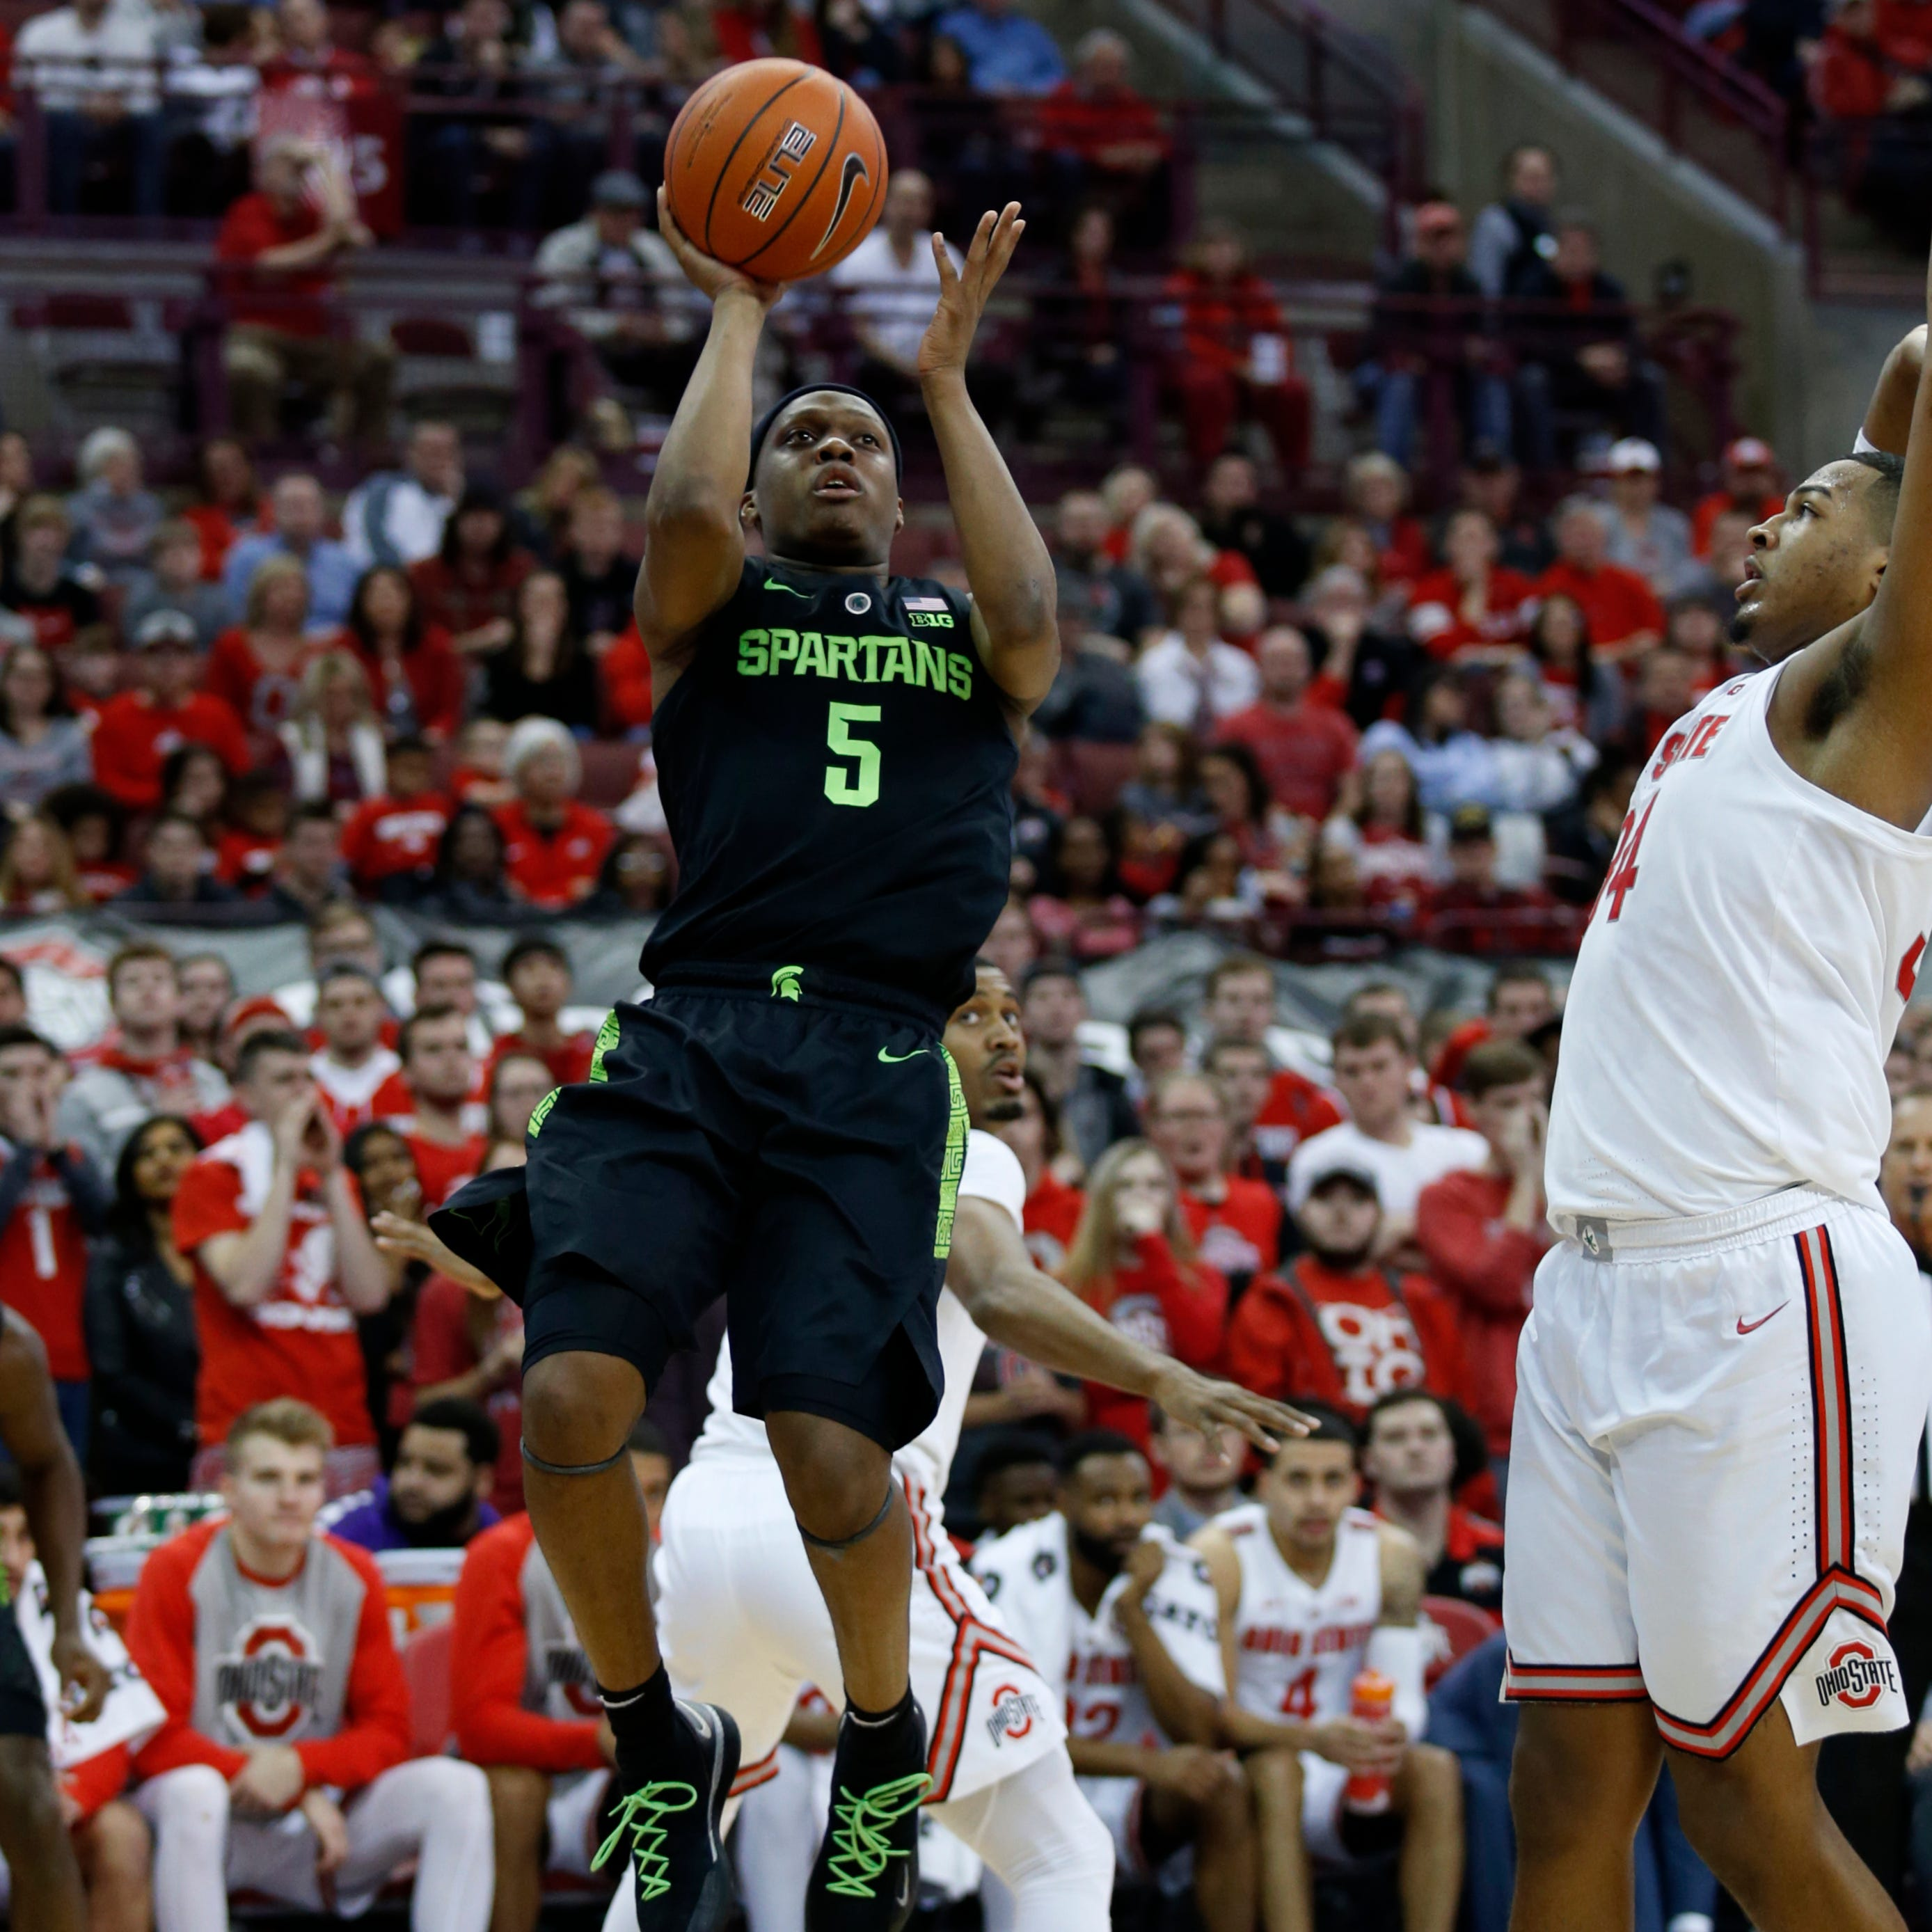 Michigan State basketball vs. Ohio State: Scouting report, prediction